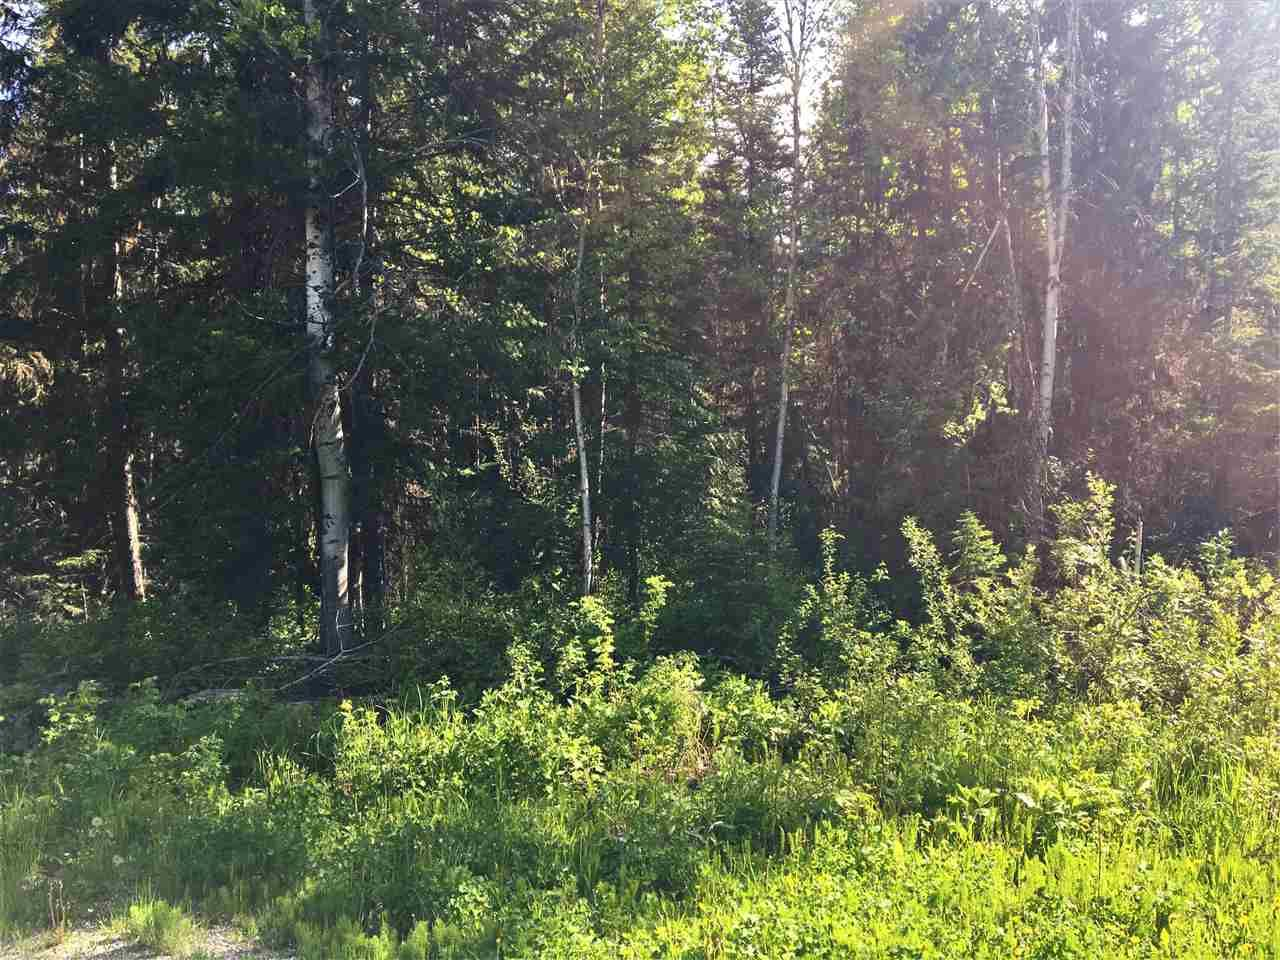 Photo 6: Photos: SHAVER ROAD in Quesnel: Quesnel - Rural North Land for sale (Quesnel (Zone 28))  : MLS®# R2461973